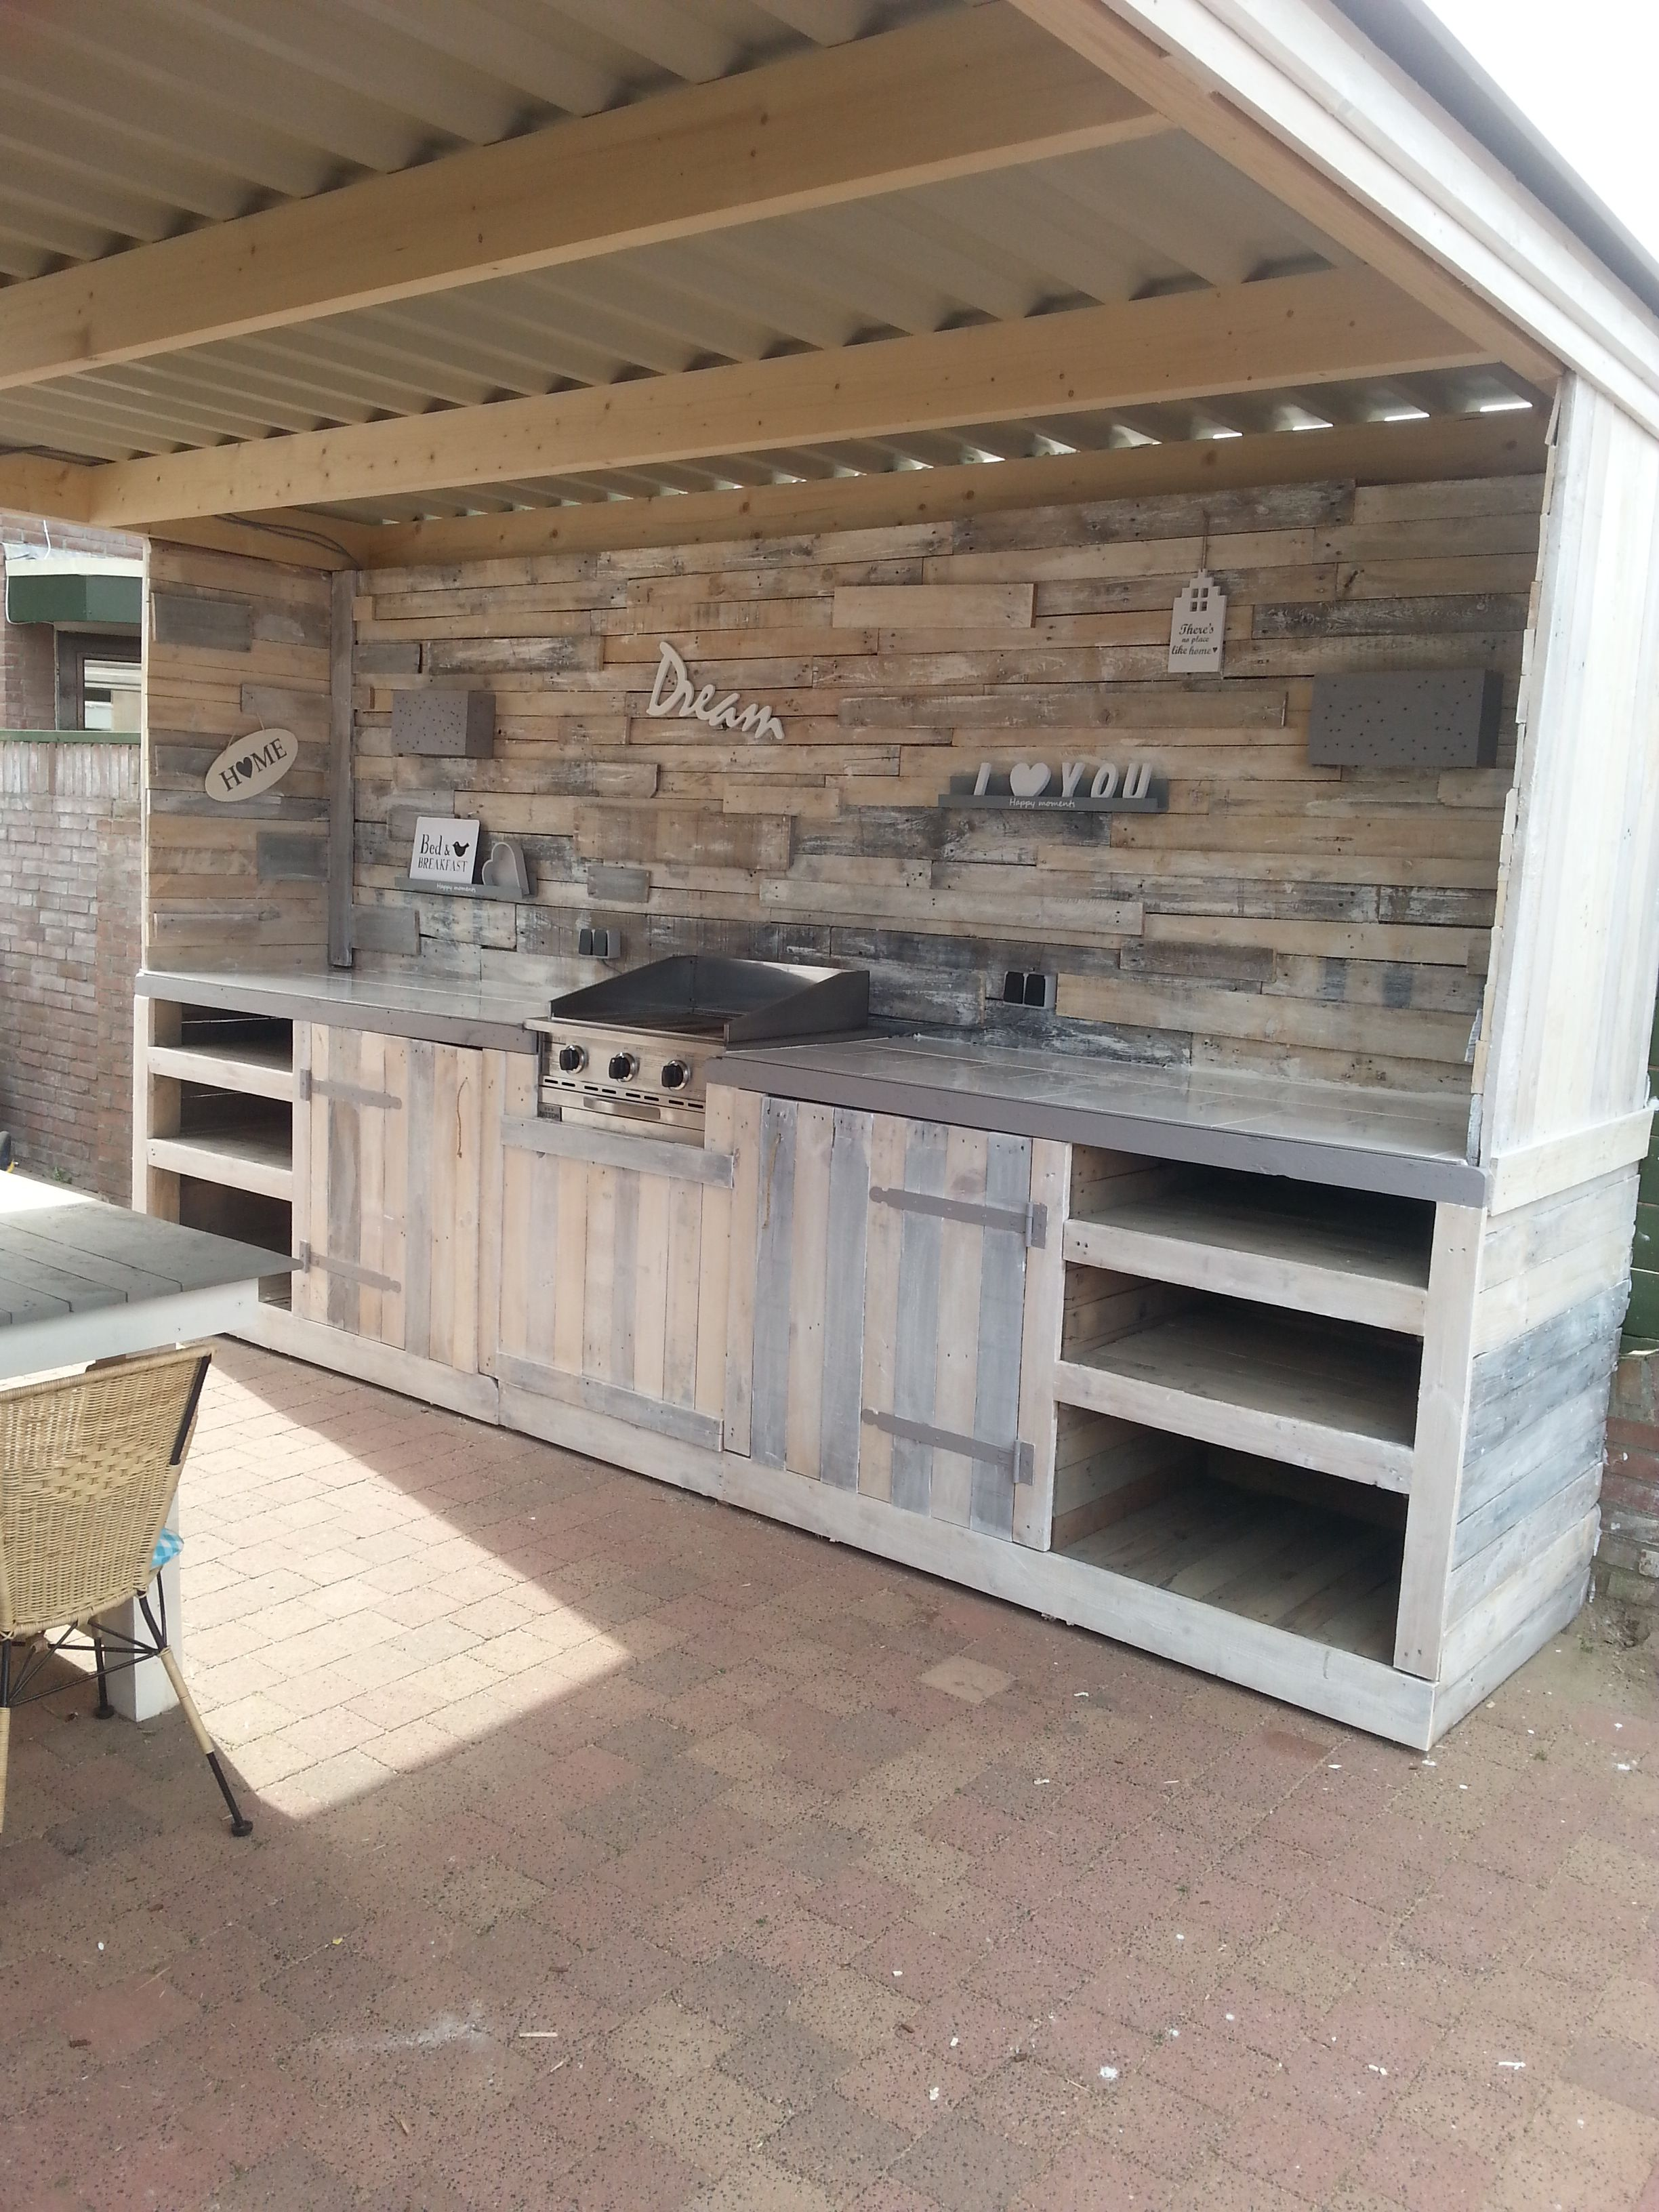 Rundes Bett Aus Paletten Must See Pallet Outdoor Dream Kitchen Recycled Pallets